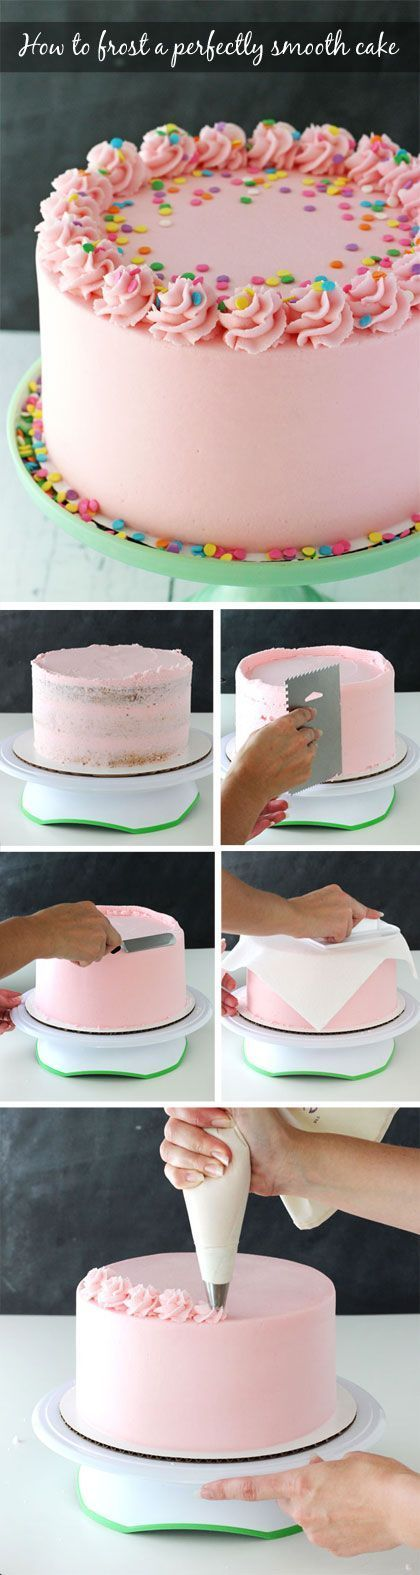 Buttercream icing recipe for cake decorating australia